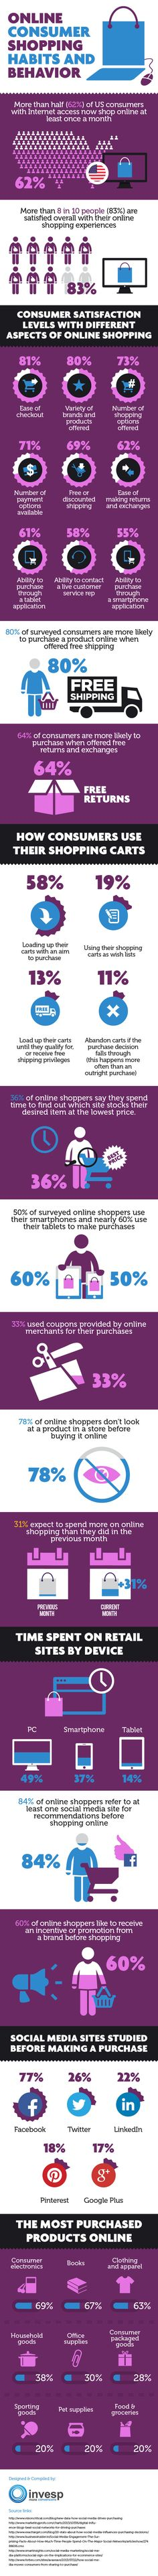 According to latest Infographic by Invesp on Online consumer shopping habits and behavior, more than of US consumers with… Inbound Marketing, Digital Marketing, Online Marketing, Content Marketing, Customer Behaviour, Consumer Behaviour, E Commerce, Retail Technology, Behavioral Analysis